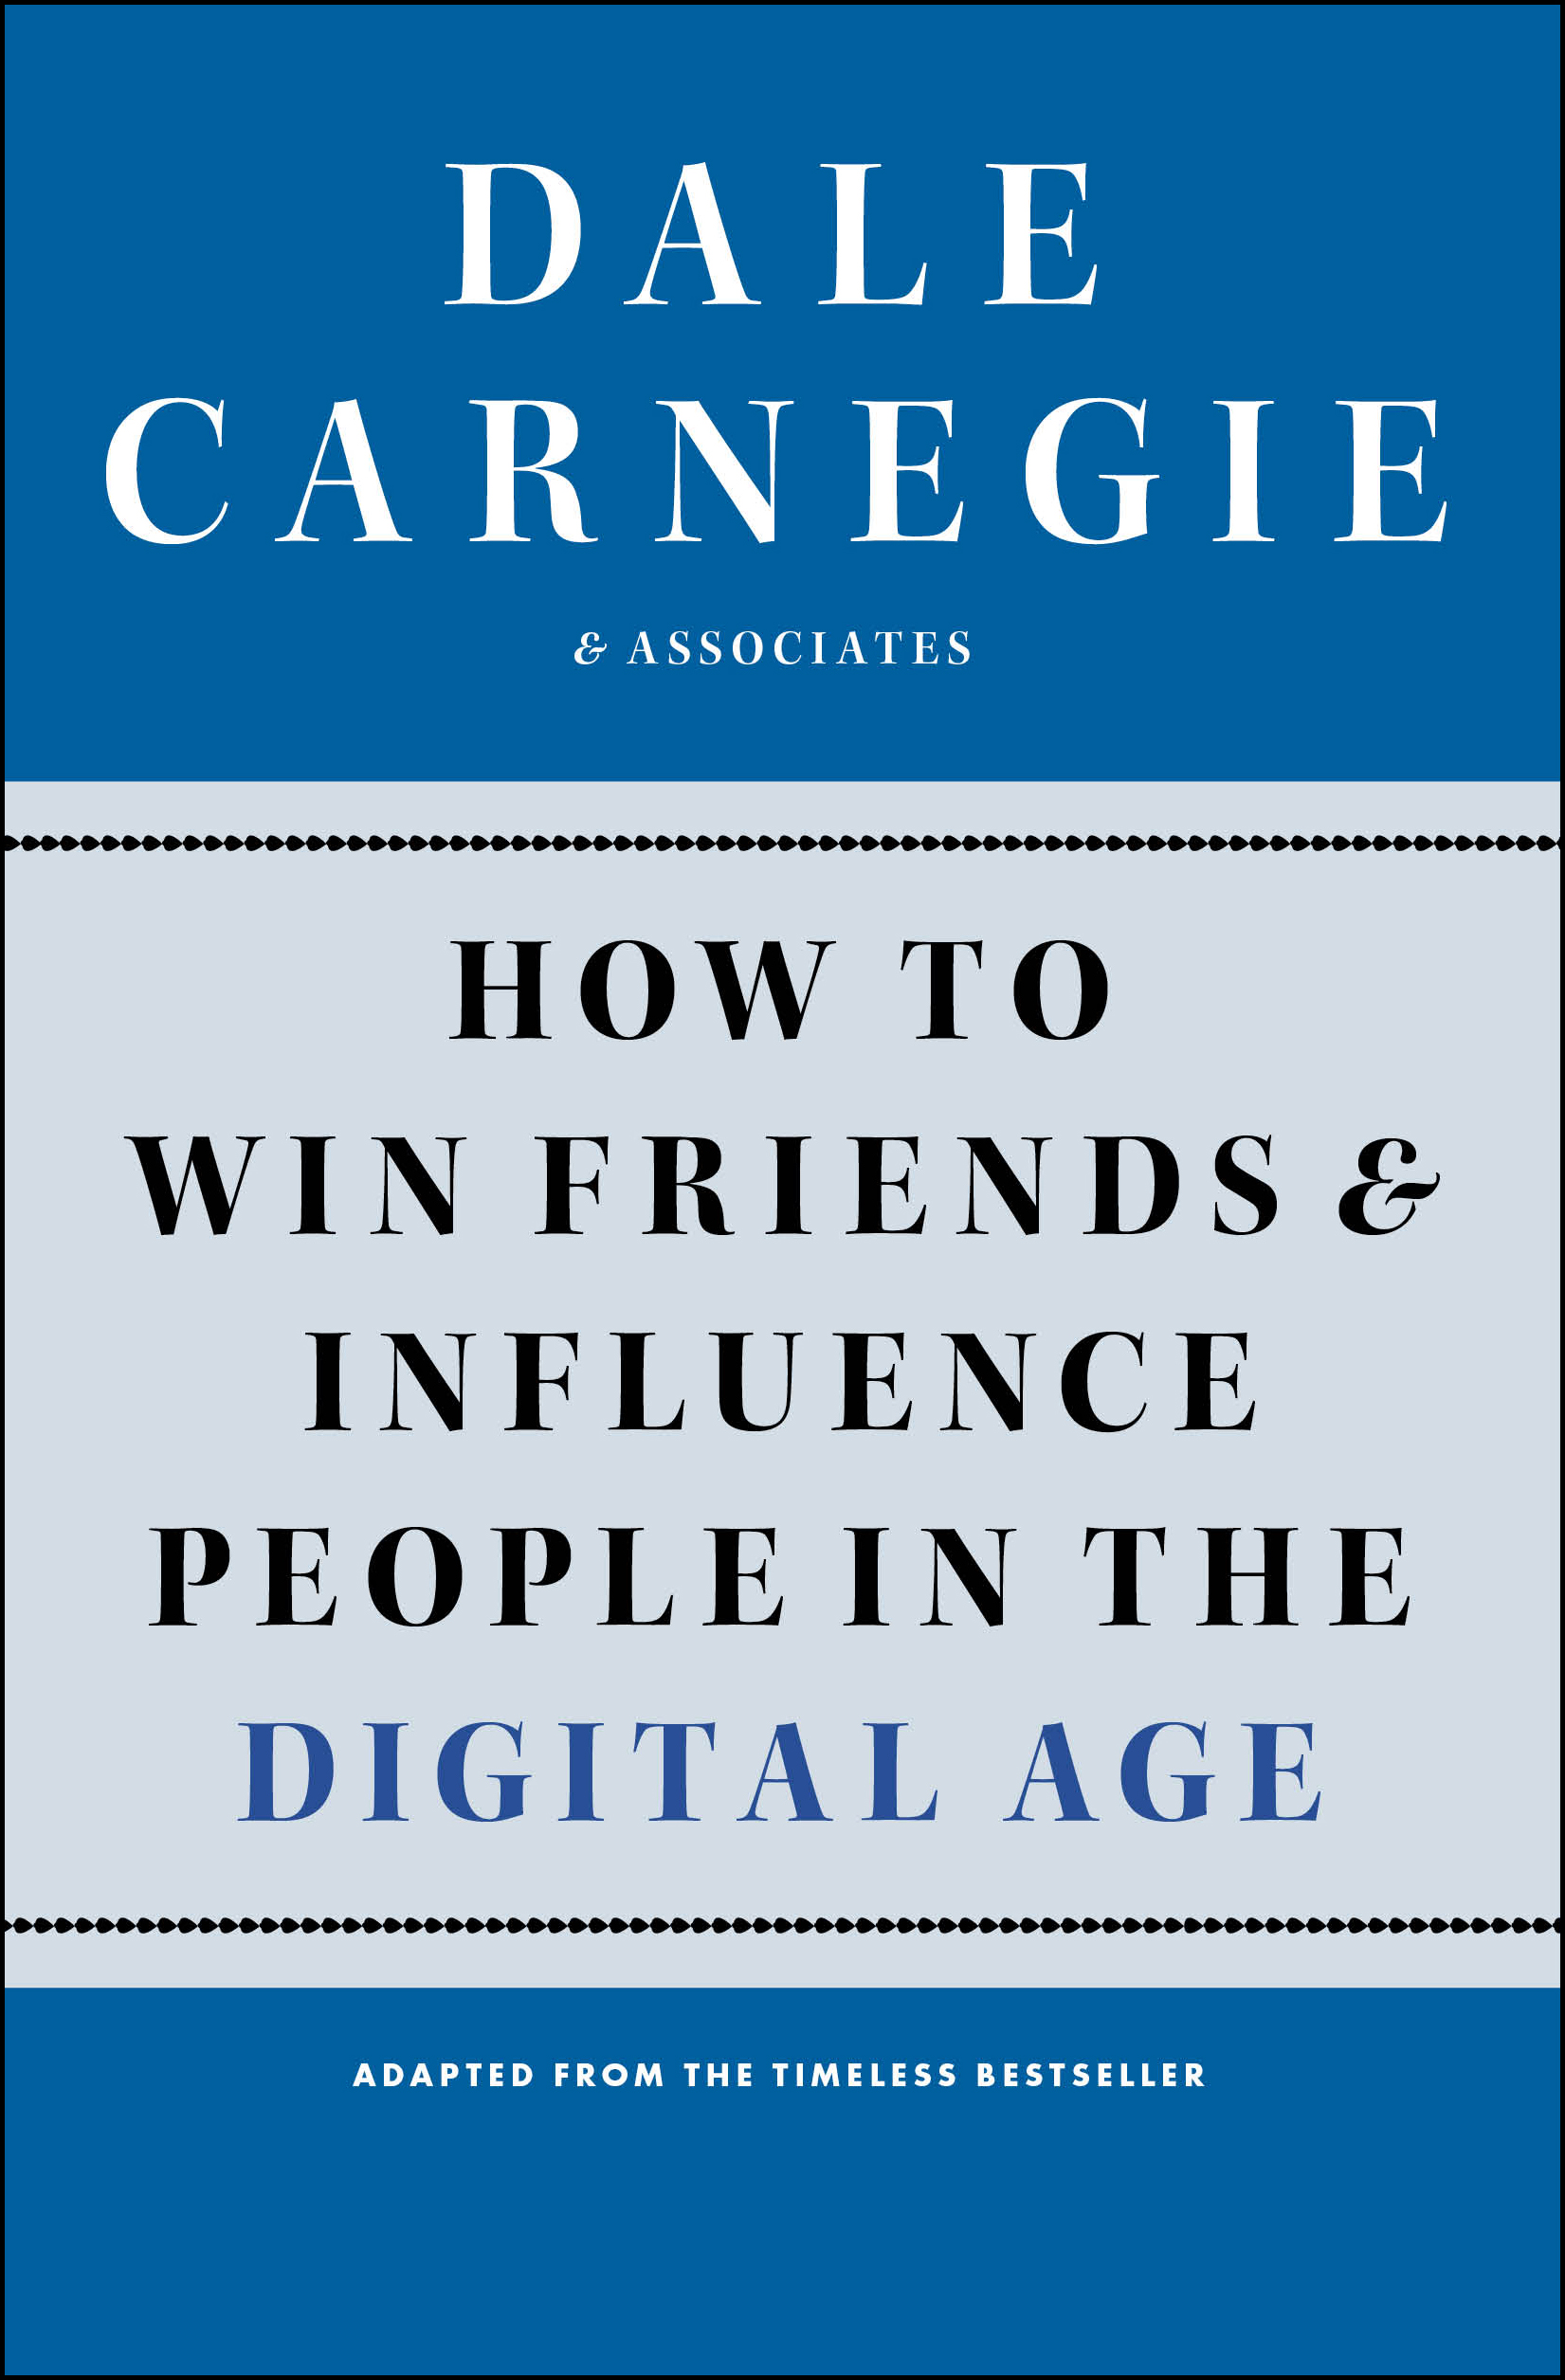 a summary of the book how to win friends and influence people by dale carnegie A complete 25 minute summary of the classic book how to win friends and influence people by dale carnegie we summarize all 4 sections of the of the book.